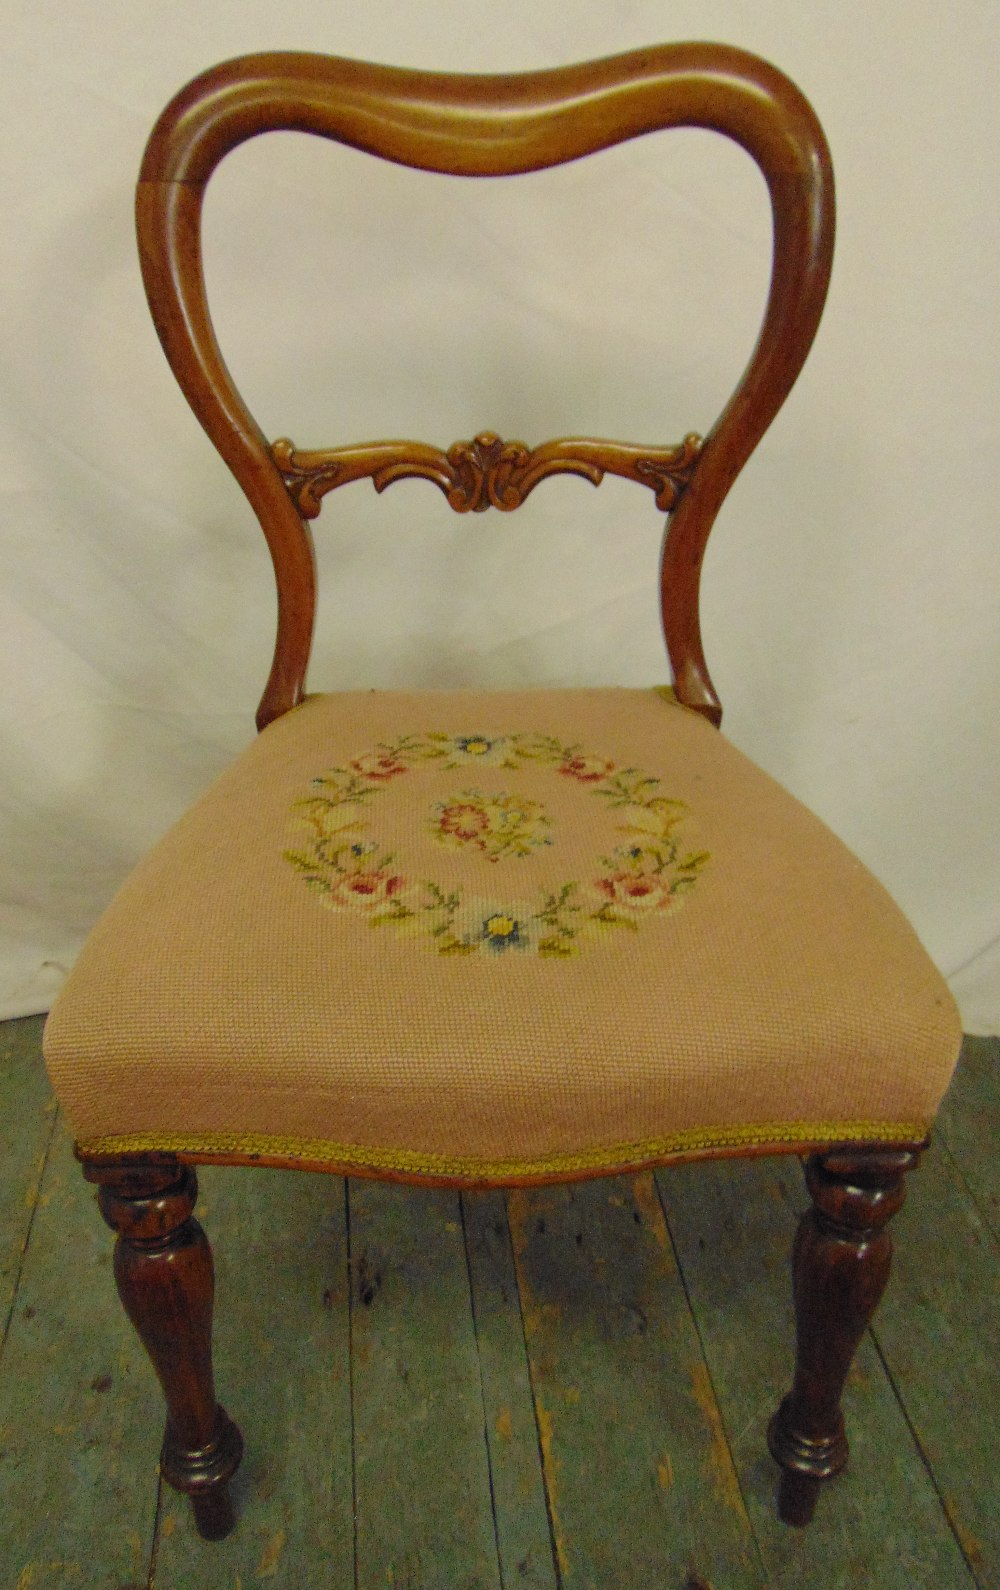 Lot 24 - A Victorian mahogany balloon back chair with upholstered seat on turned legs